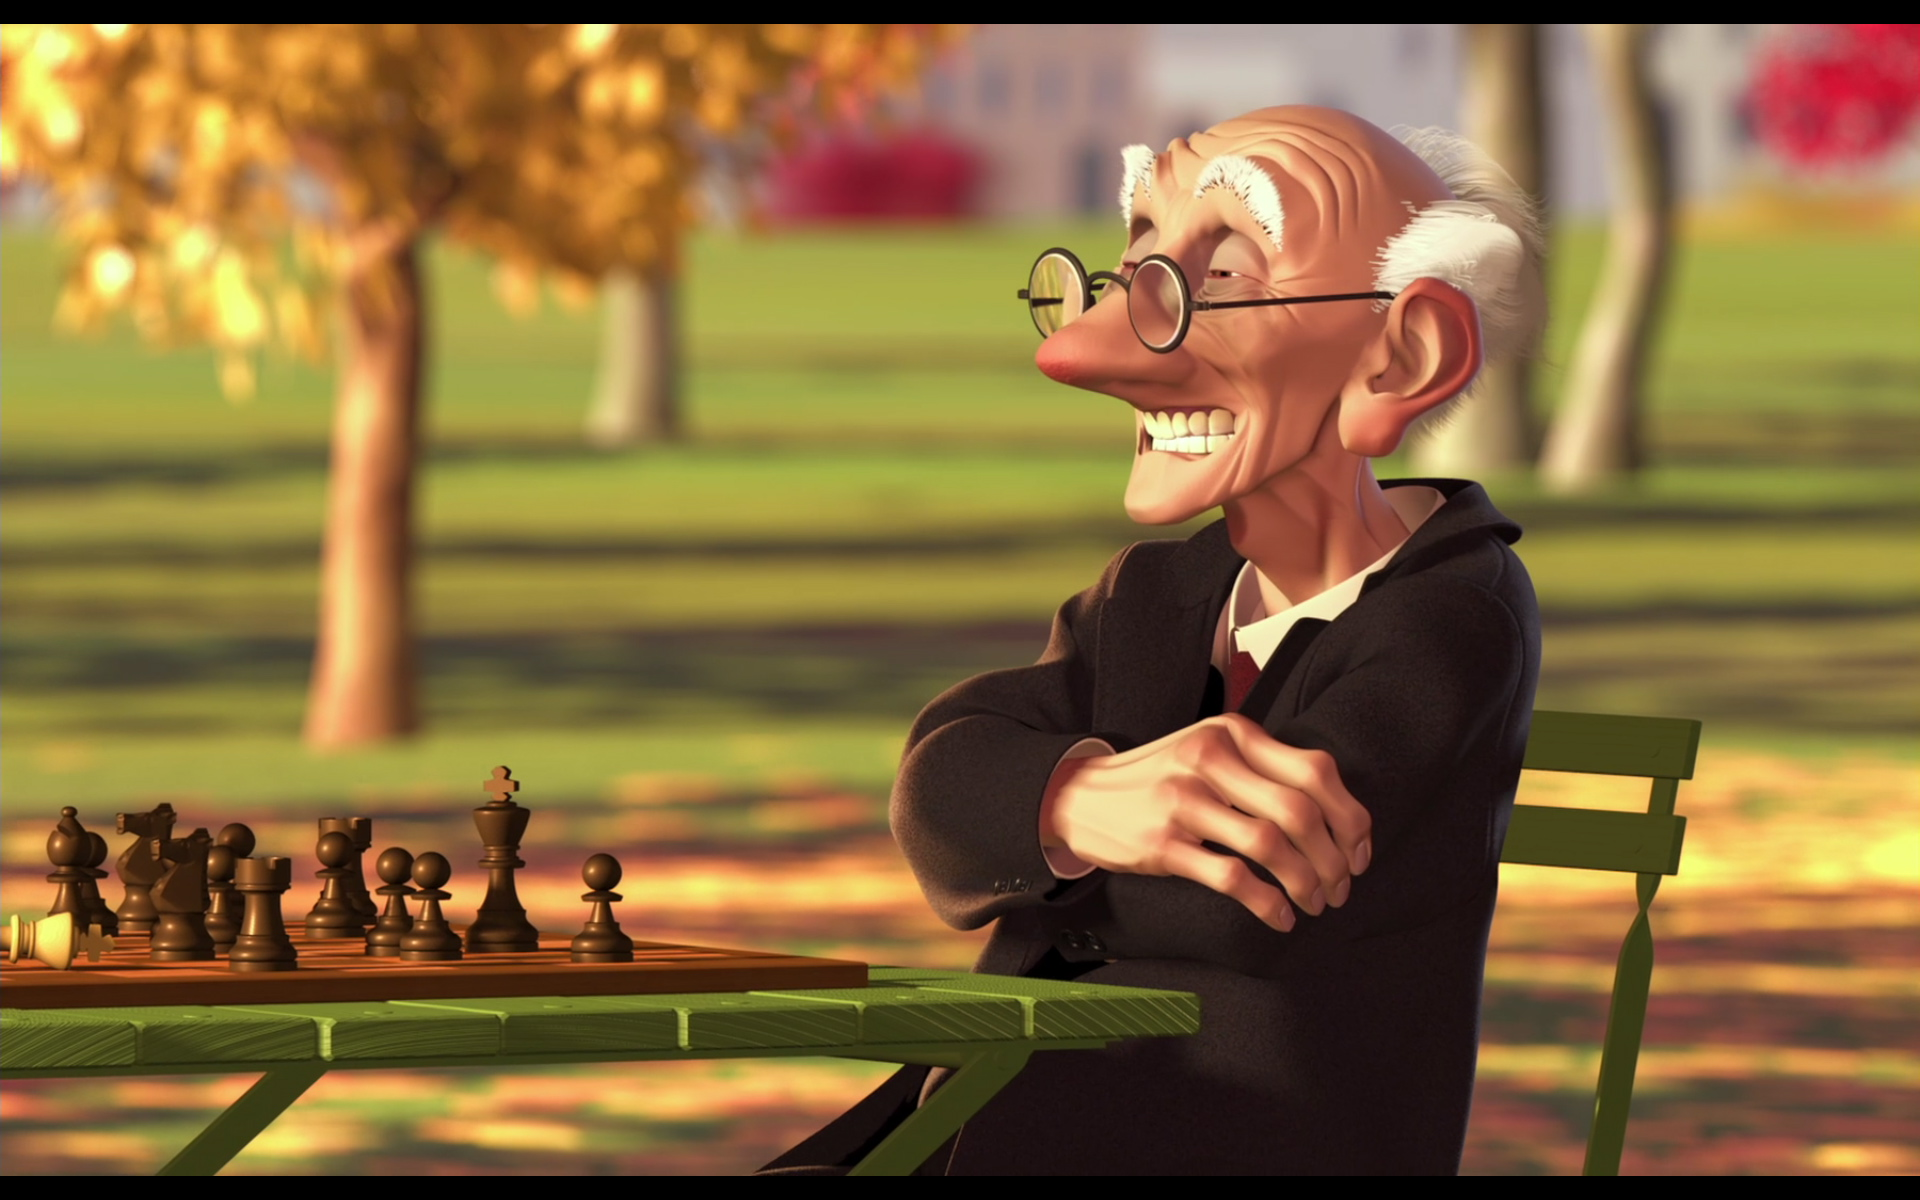 Chess Wallpaper Hd With Quotes 3 Pixar Hd Wallpapers Backgrounds Wallpaper Abyss